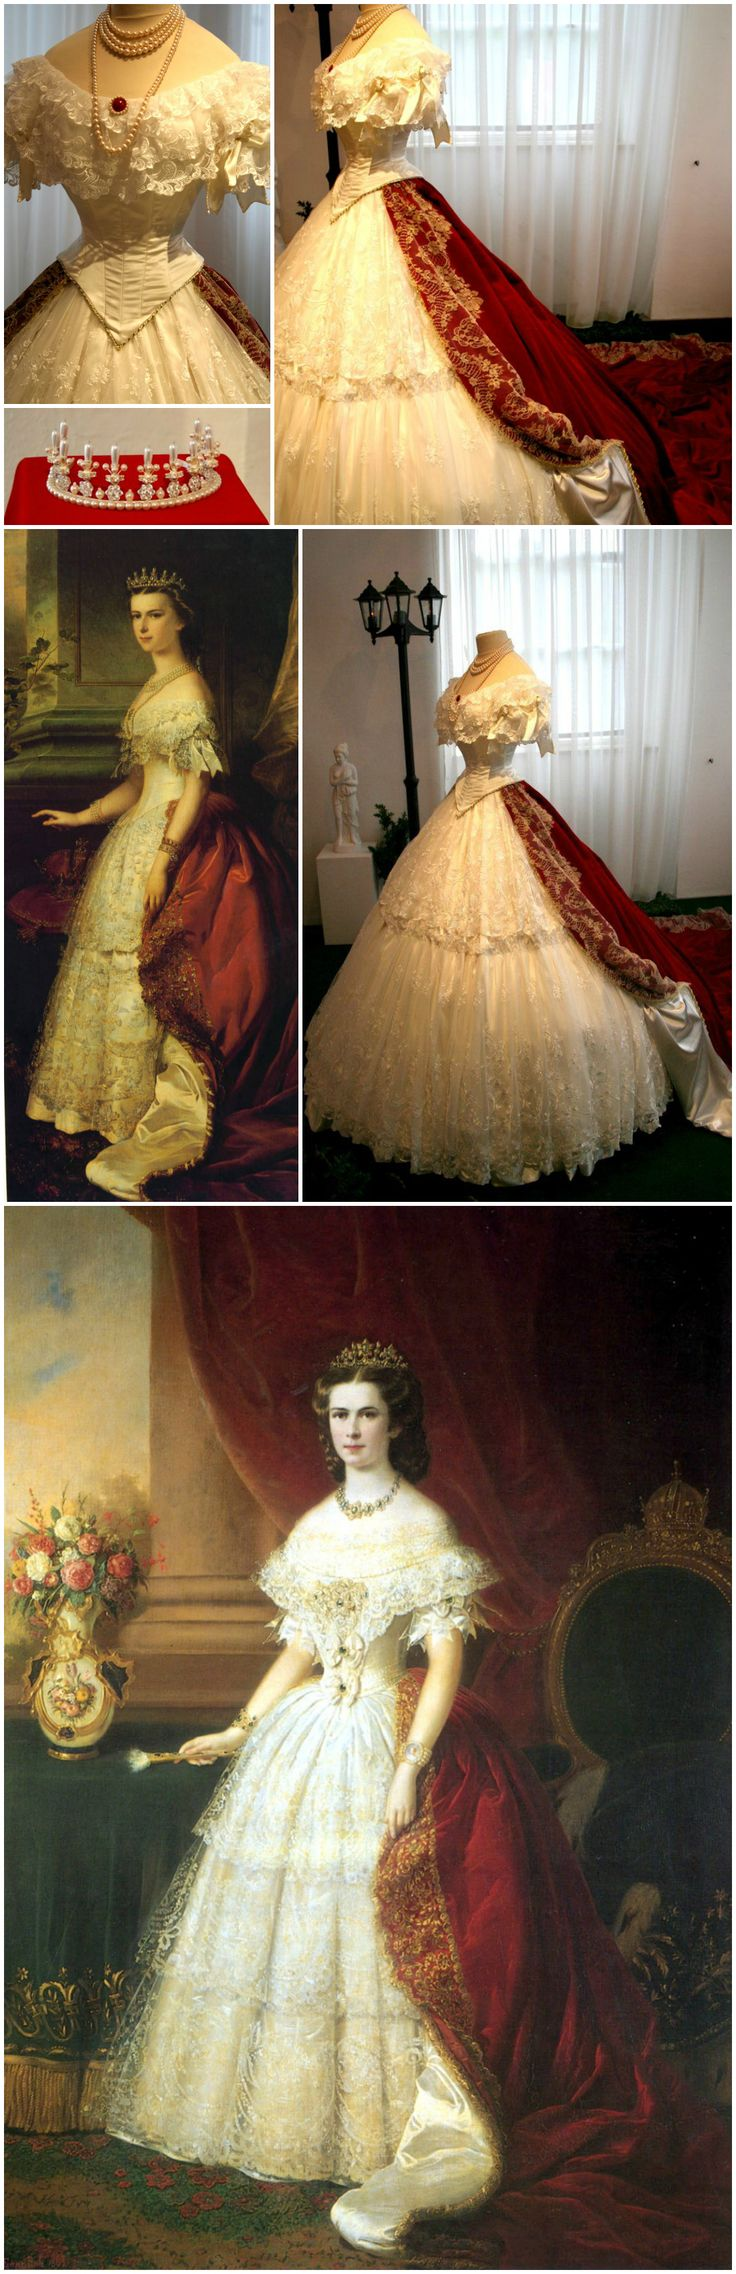 "Replicas of Empress Elisabeth of Austria's tiara and court dress, by D'Elia Salon. Installation photos via ""Mythos Sisi"" article on Myheimat.de. D'Elia Salon exhibited 12 dresses at the Sisi Schloss Unterwittelsbach, all copies of gowns worn by the empress in portraits. Various portraits from the 1850s and '60s show the empress wearing this style of court dress: an 1863 painting by Franz Russ, at bottom (via Nata Volga on LiveInternet) and an undated portrait right above (via Gogmsite.net)."